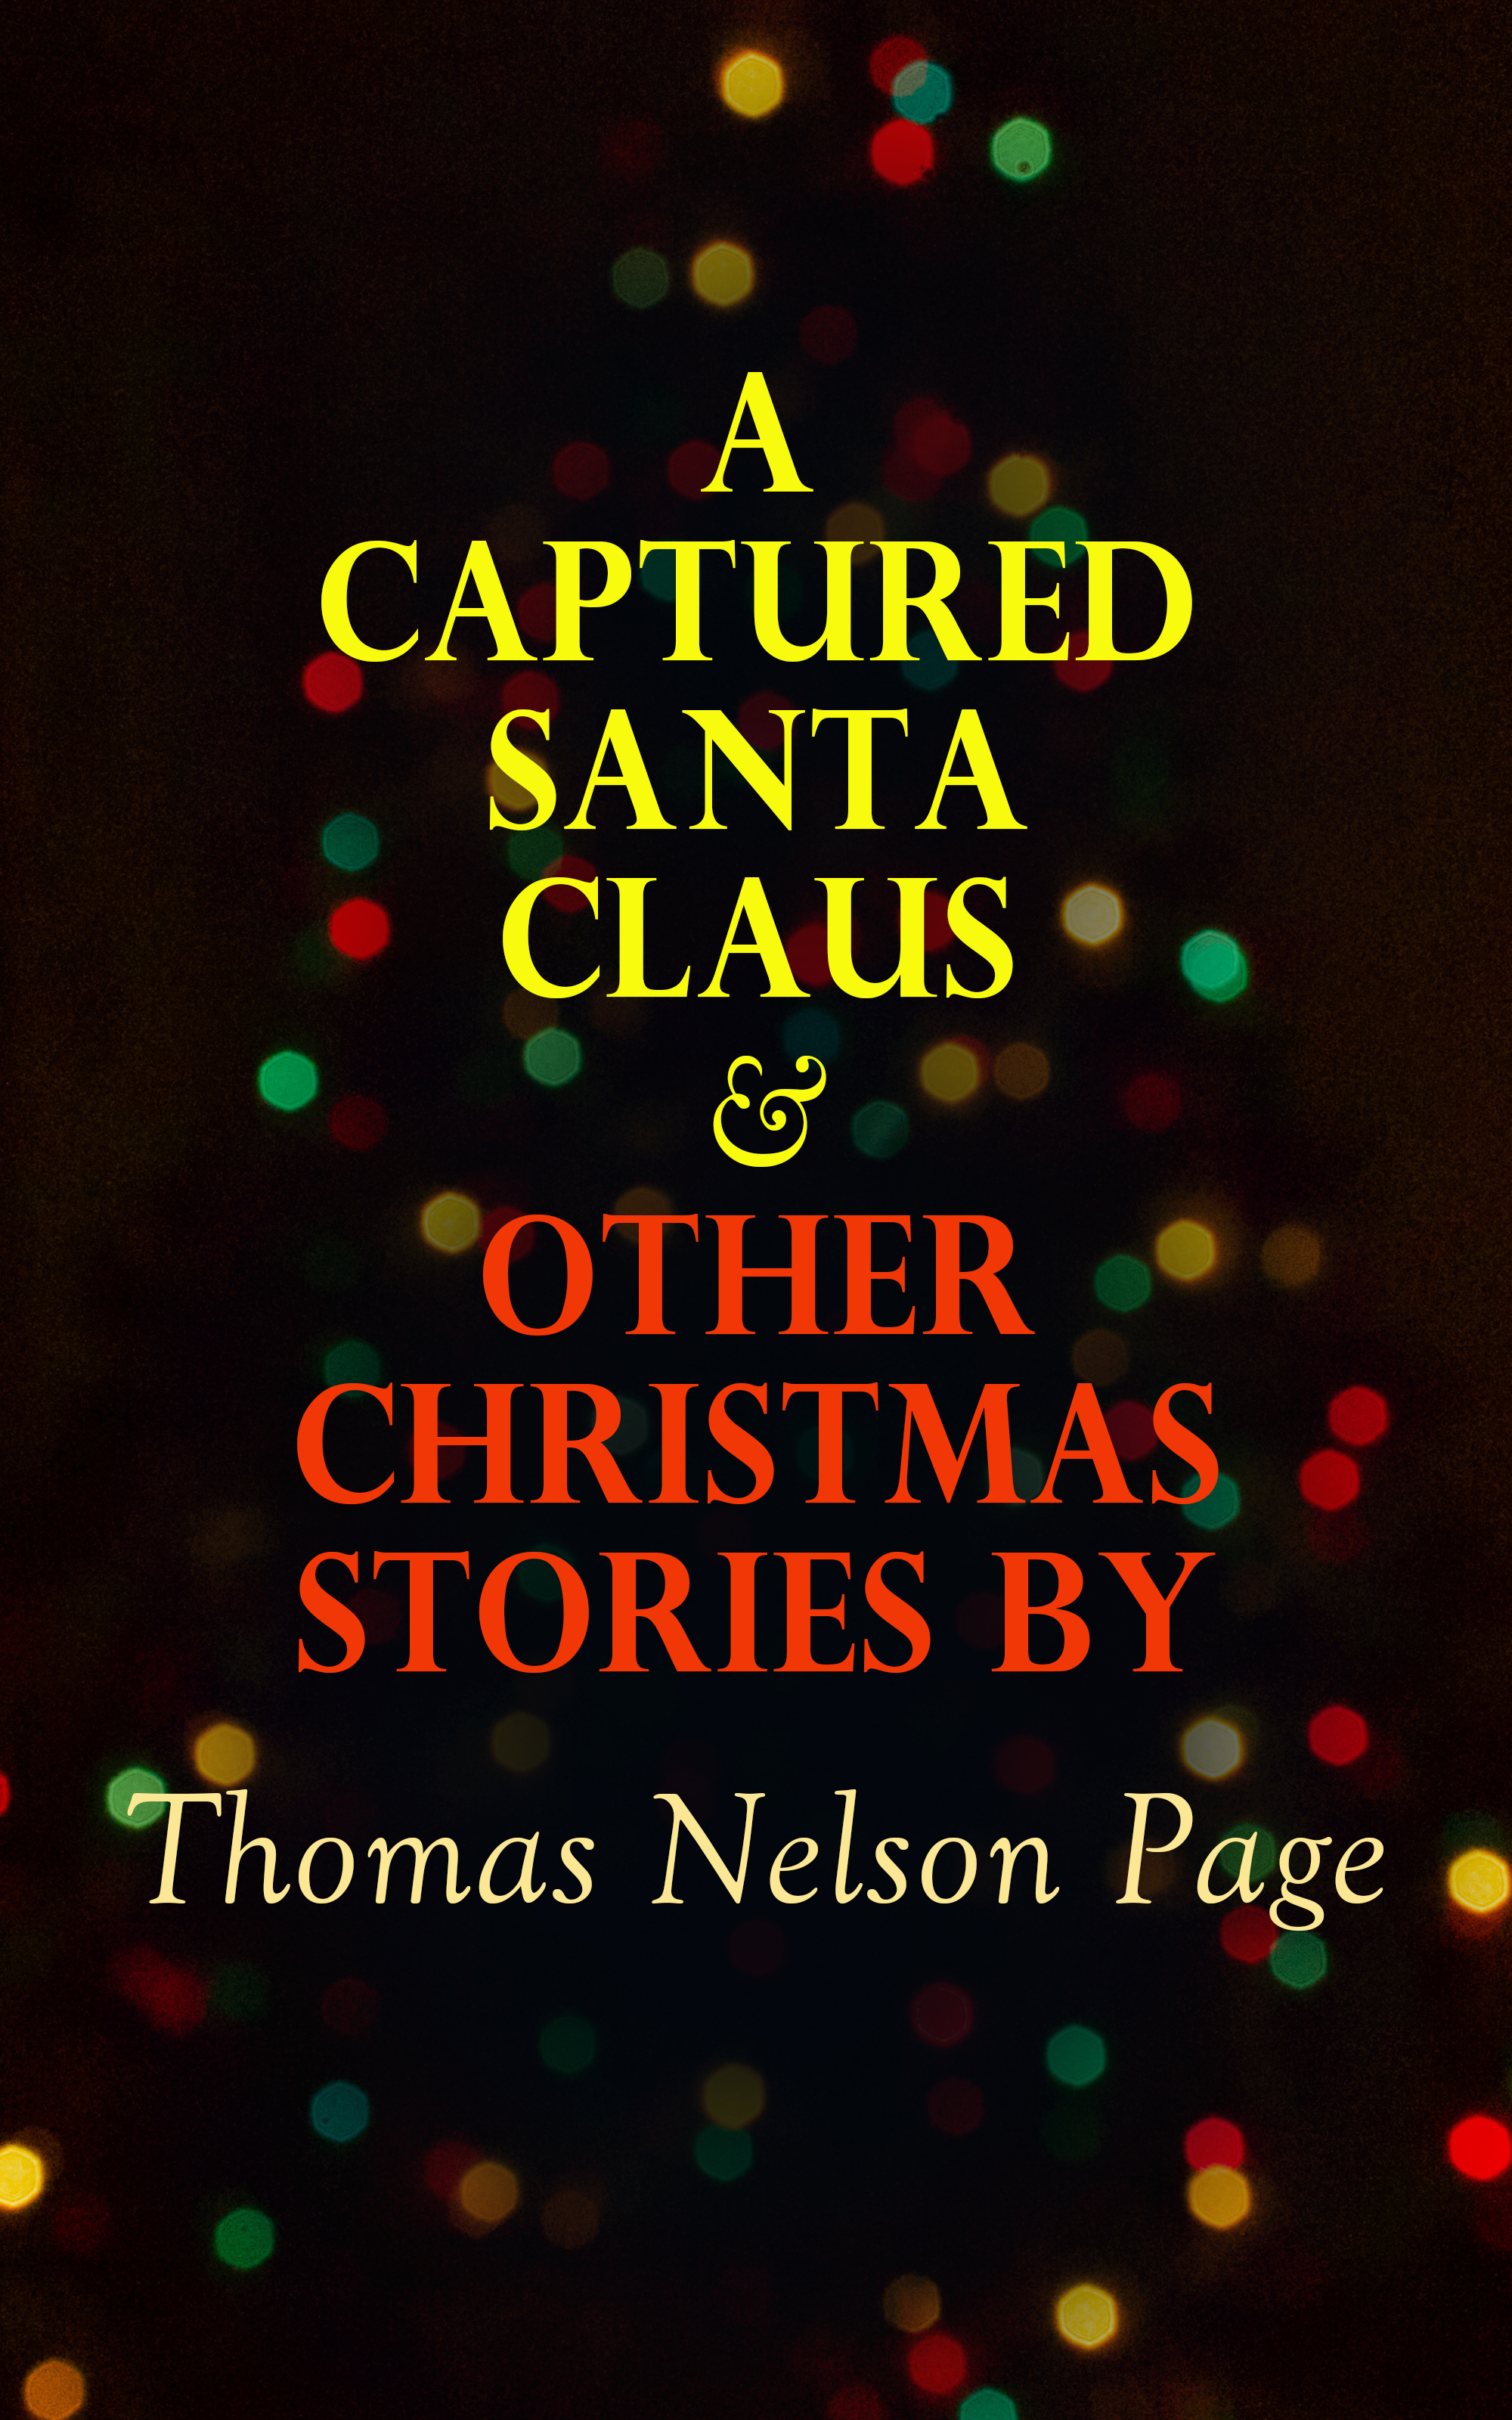 Thomas Nelson Page A Captured Santa Claus & Other Christmas Stories by Thomas Nelson Page sitemap html page 2 page 7 page 8